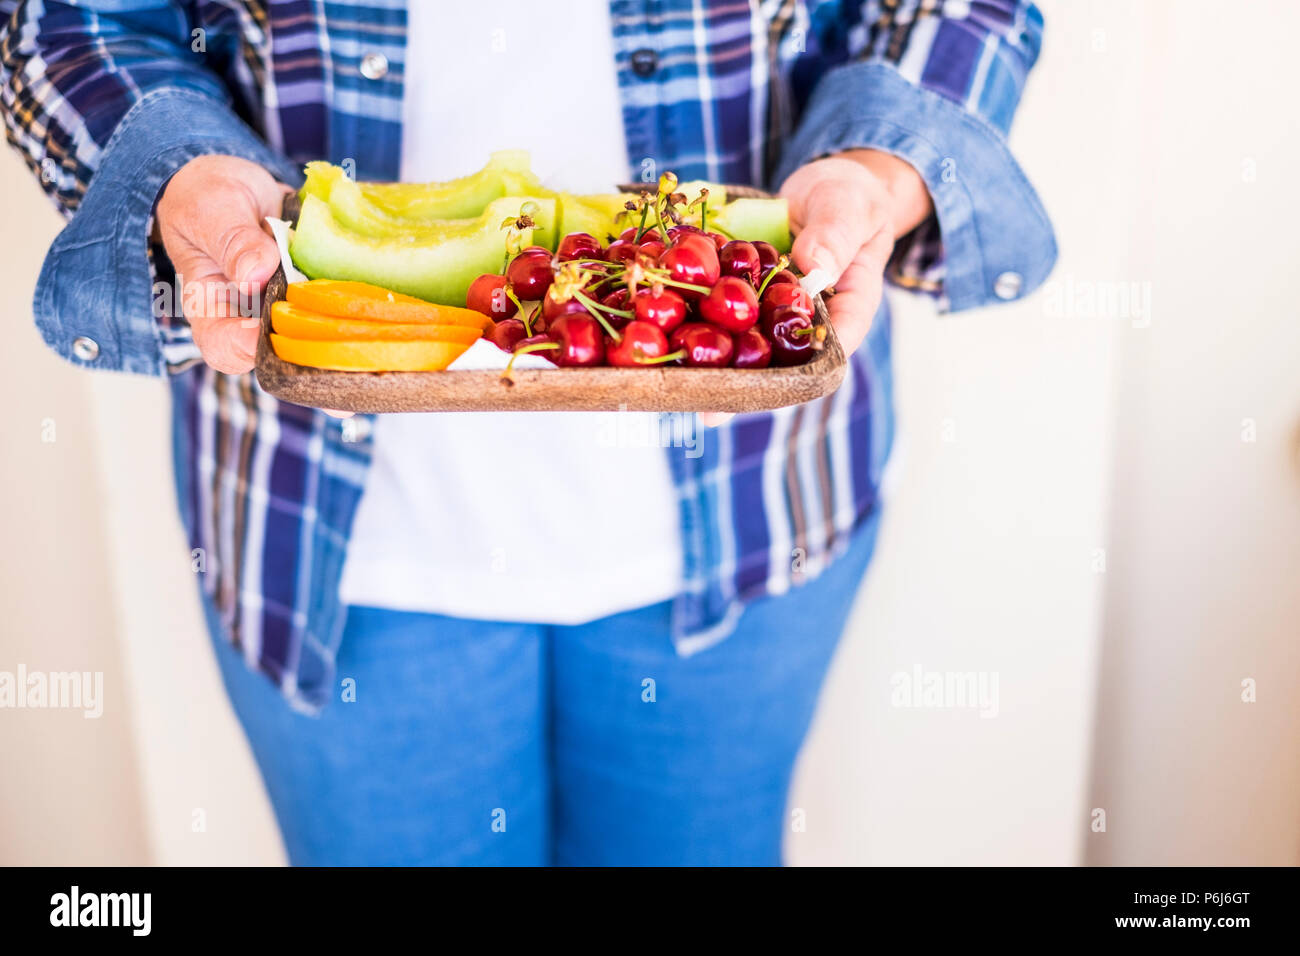 old caucasian woman senior caucasian in casual jeans clothes offer some fresu seasonal fruits to you. melon, orange and cherry for a mixed colors food - Stock Image